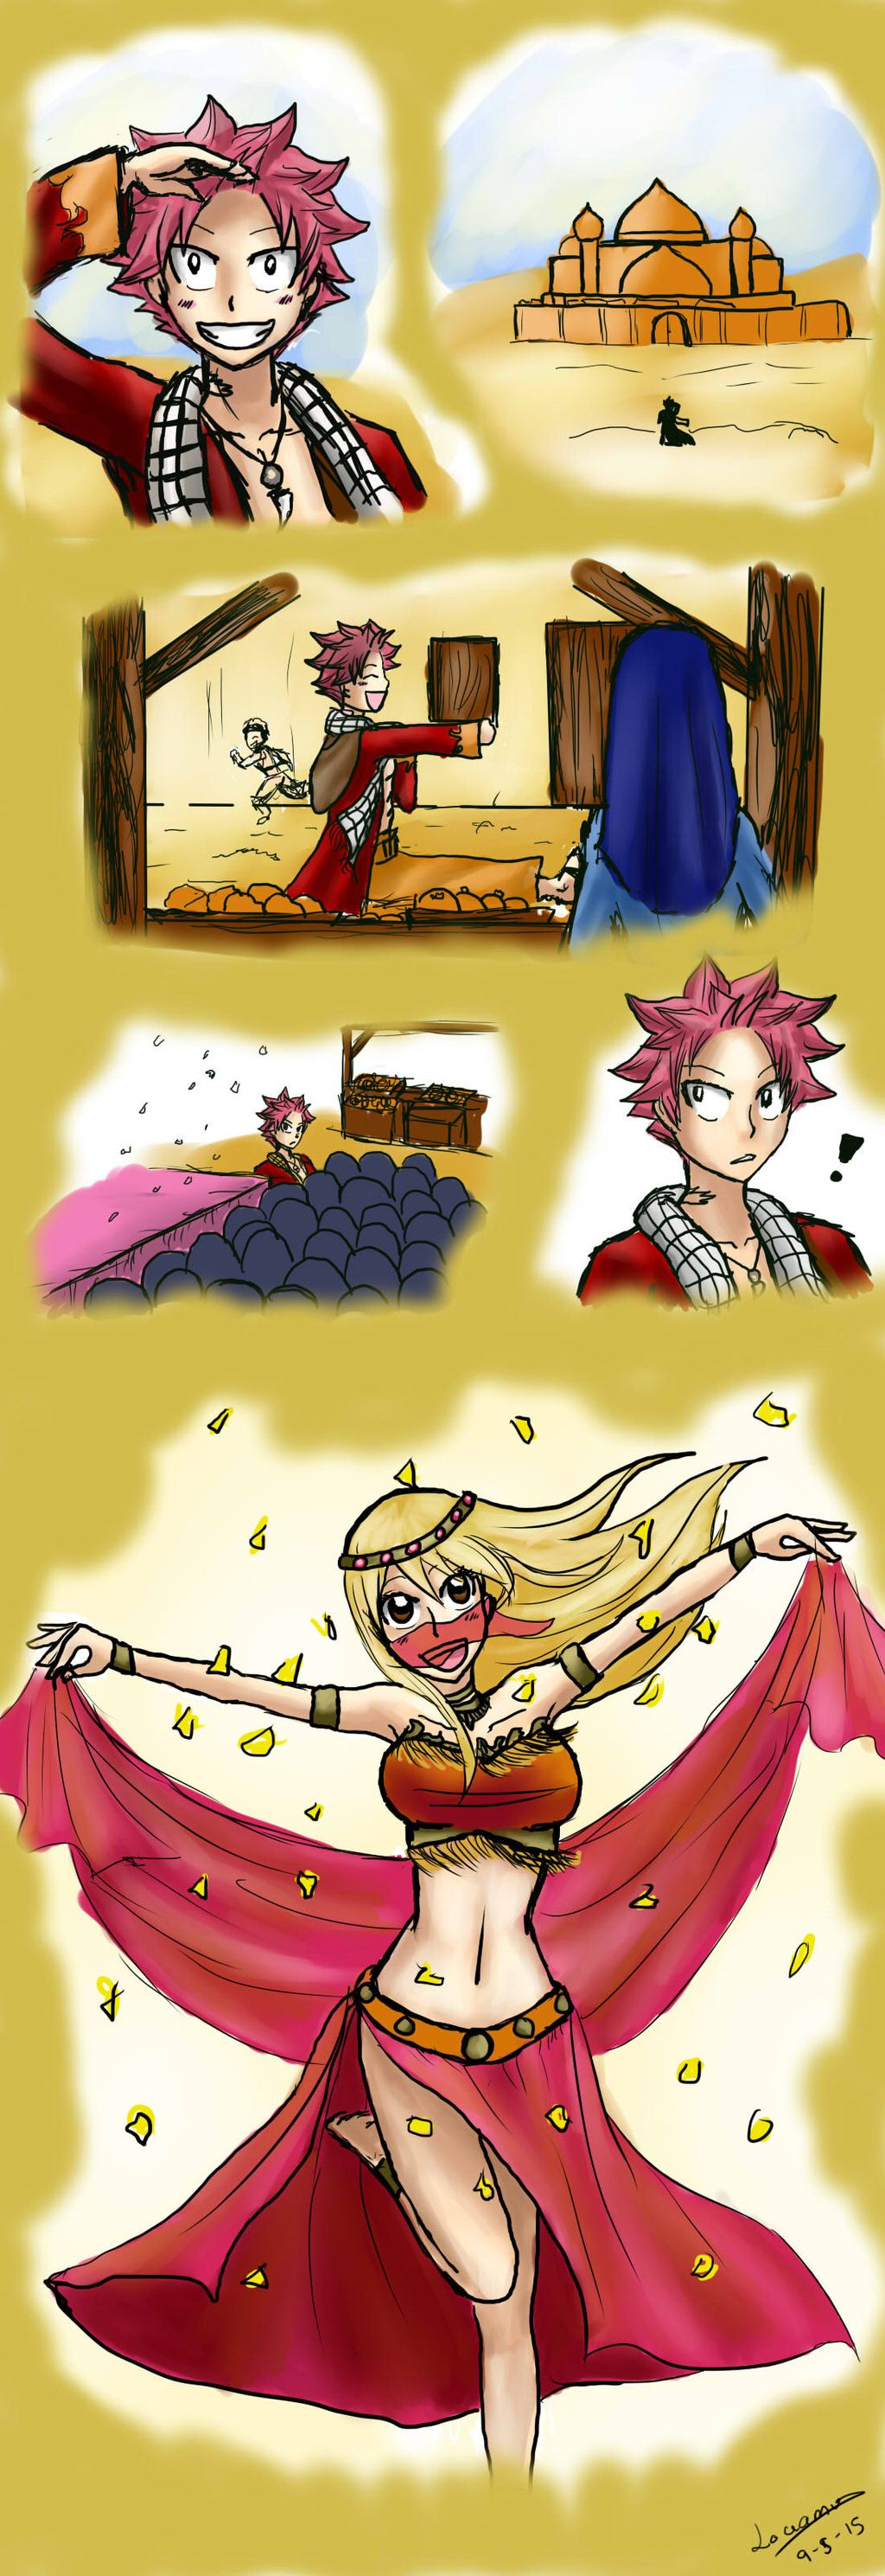 Fairy Tail Fanfiction End Revealed: Golden Like The Sun Chapter 1 By Lovamv.deviantart.com On